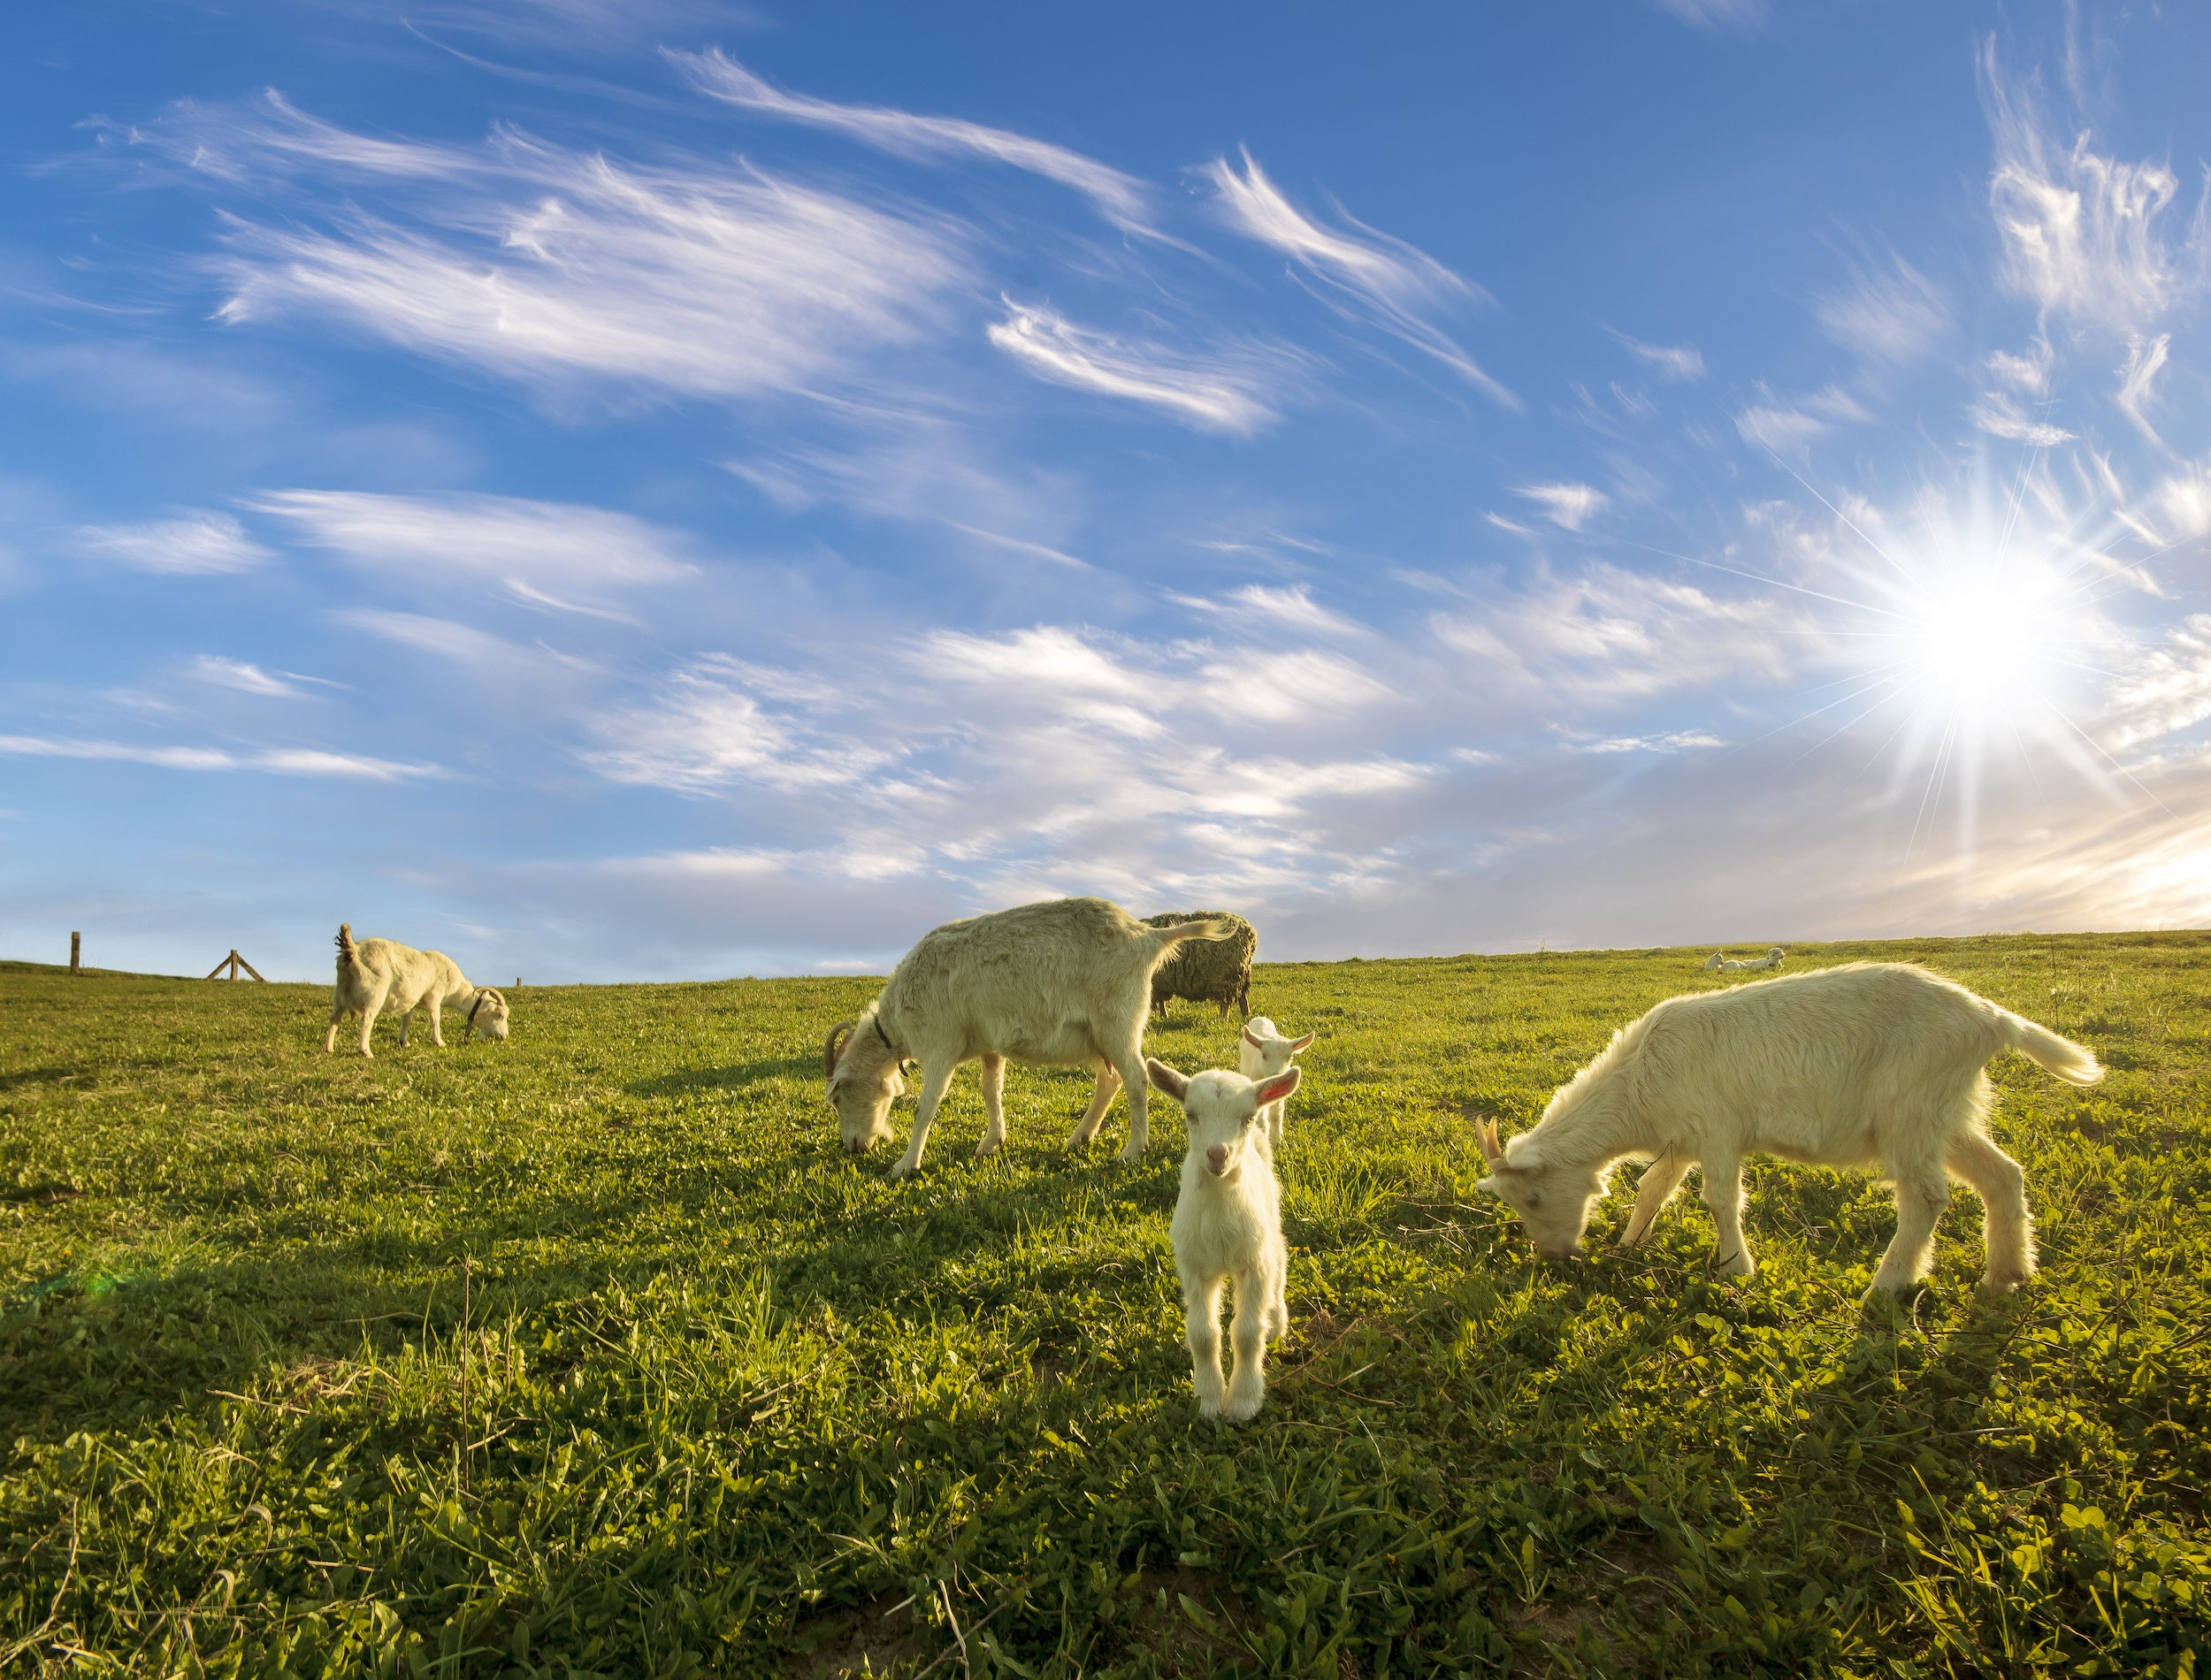 small herd of goats grazing in the meadow on a sunny day